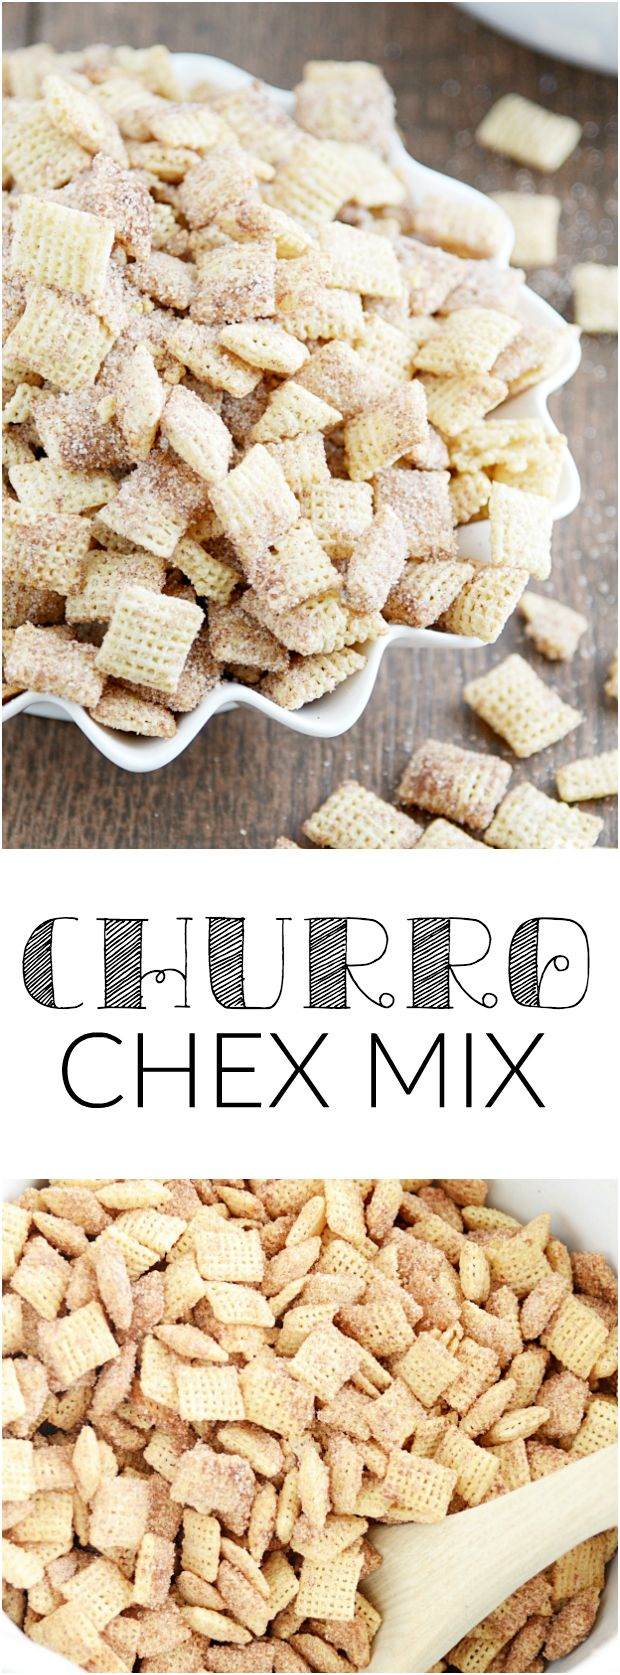 Allergy Friendly Churro Chex Mix Recipe (GF, DF, Egg, Soy, Peanut/Tree nut Free, Top 8 Free, Vegan) by Something Swanky guest posted on Allergy Awesomeness